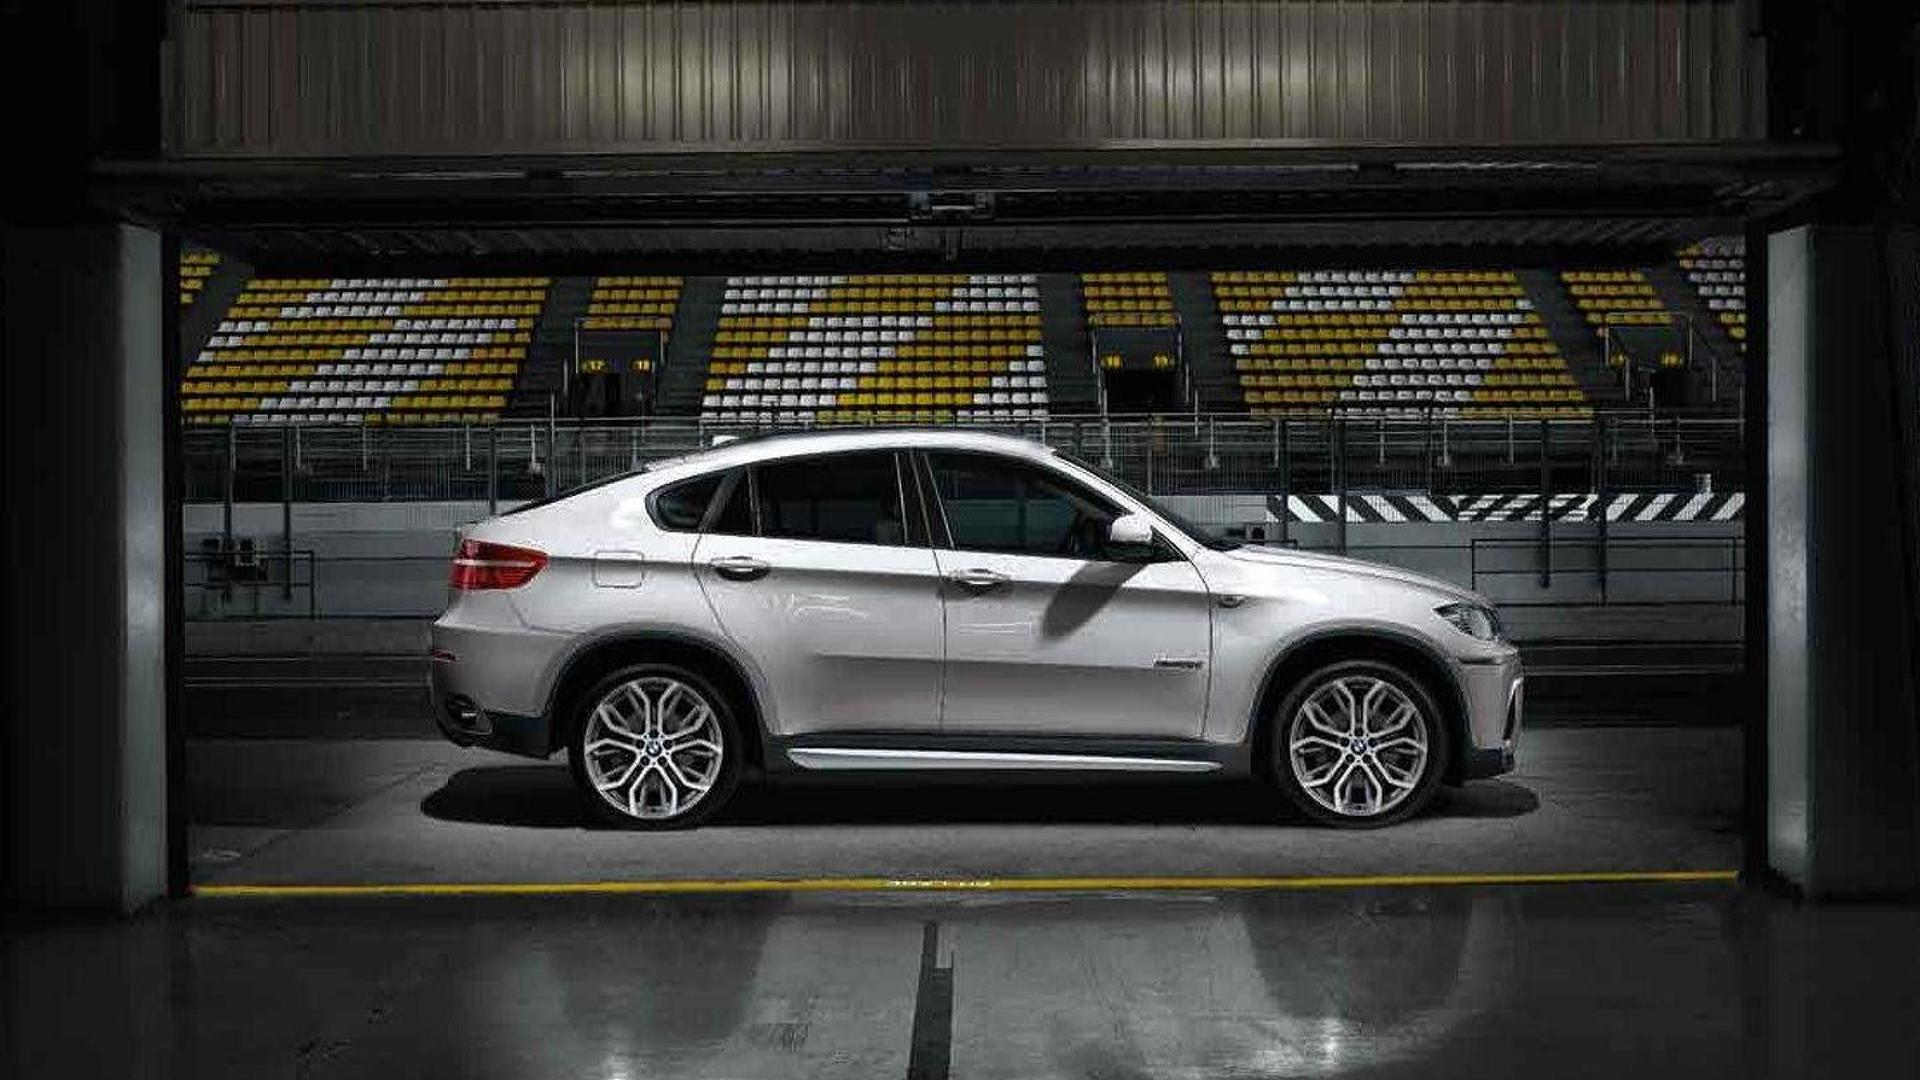 BMW X6 Performance Unlimited special edition revealed for Japan